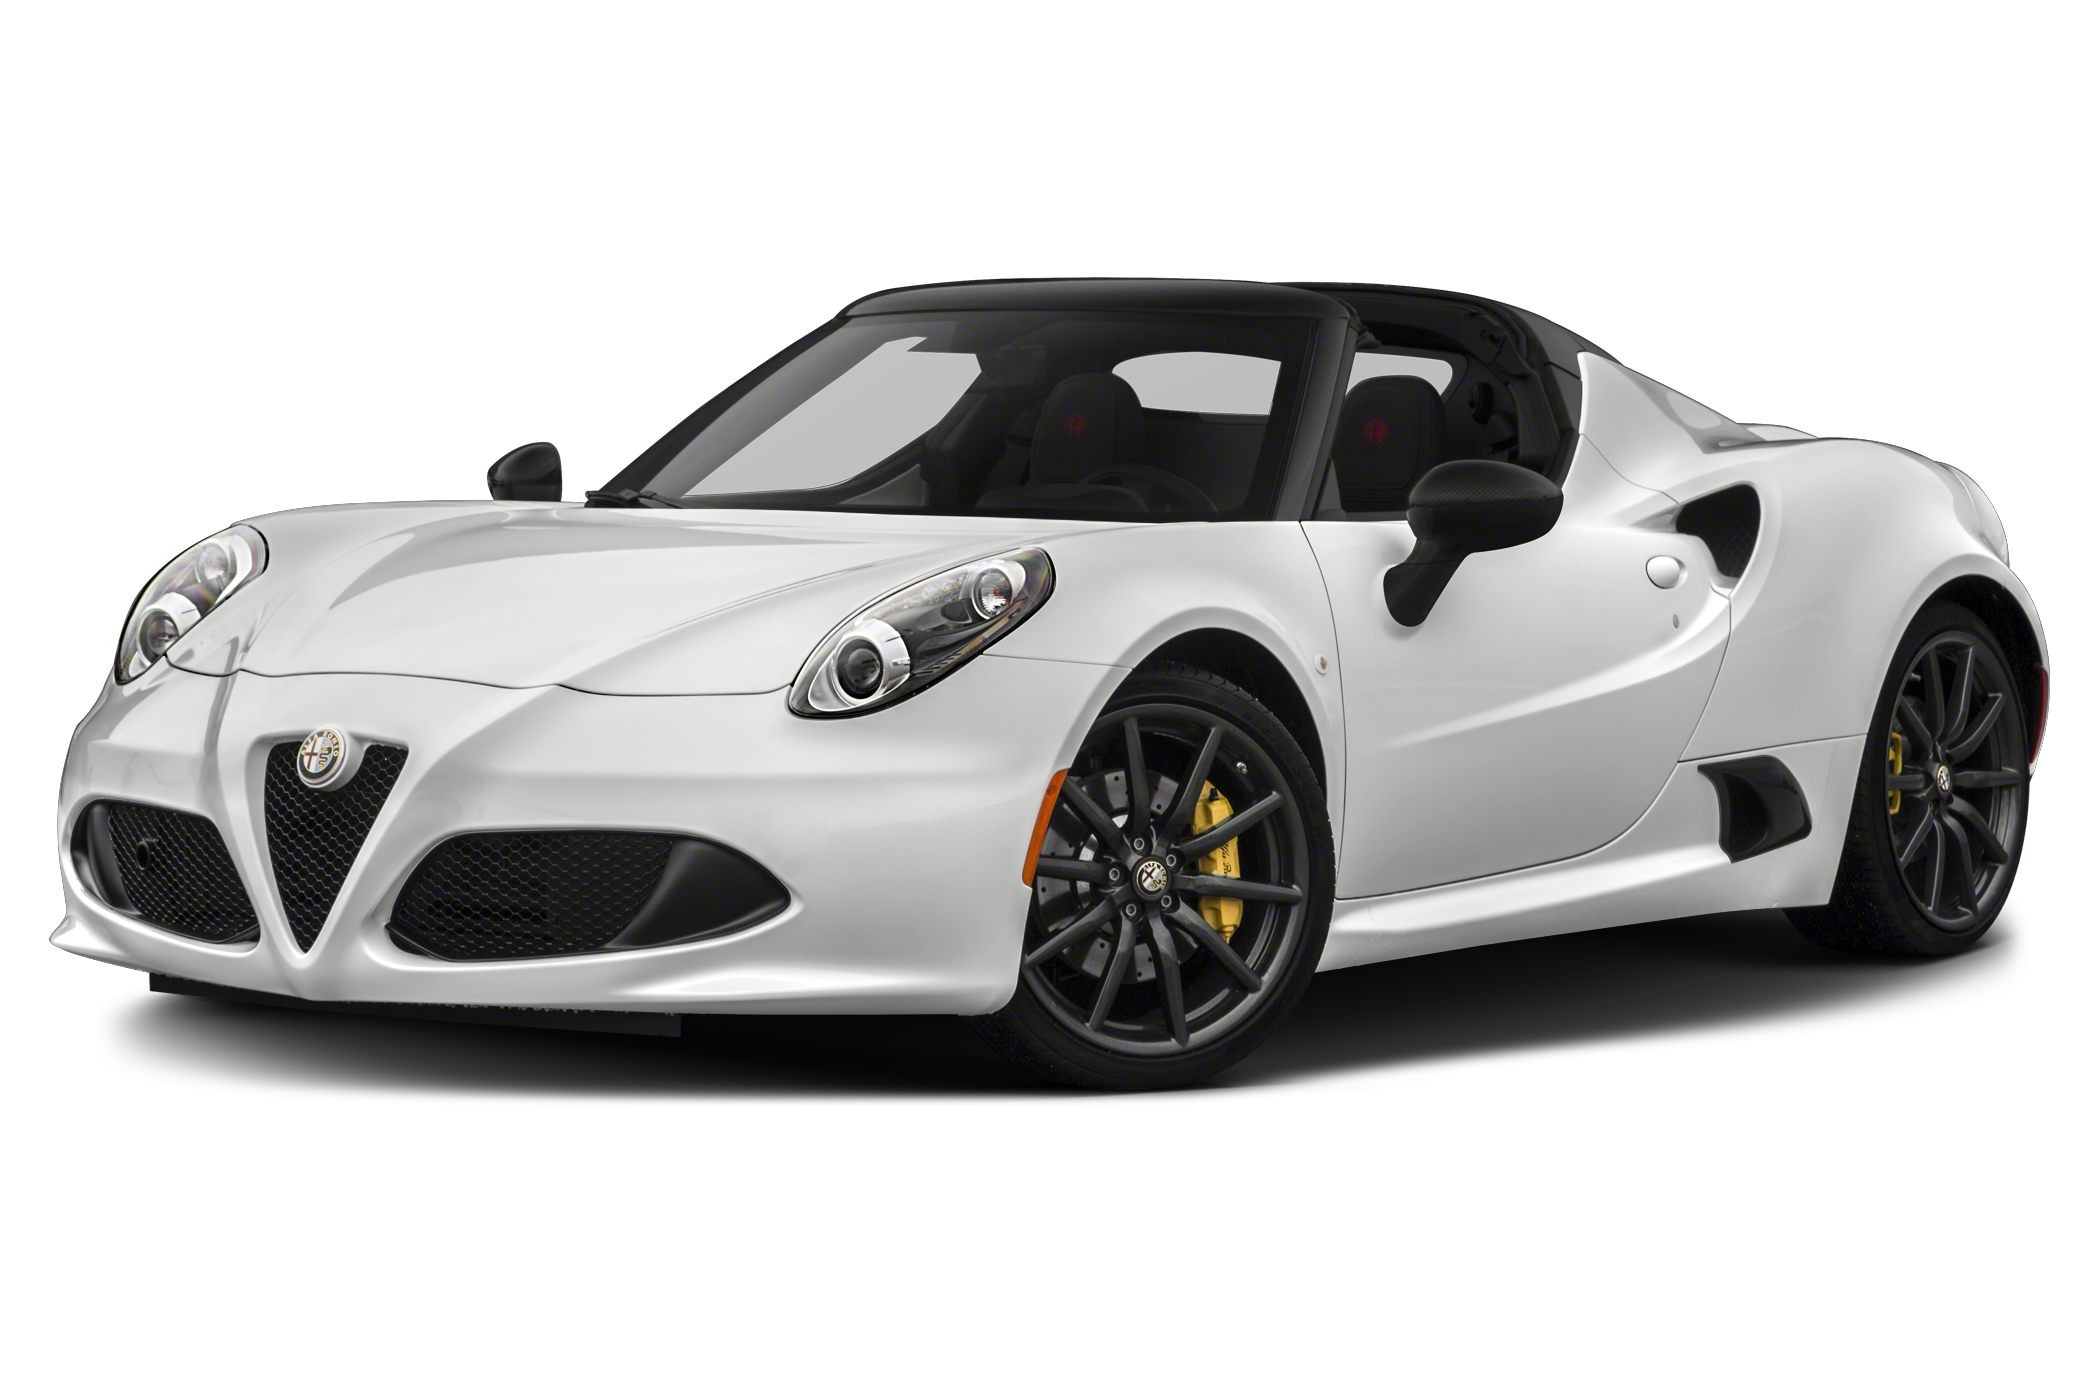 2015 Alfa Romeo 4c Msrp Unique 2015 Alfa Romeo 4c Spider Specs and Prices